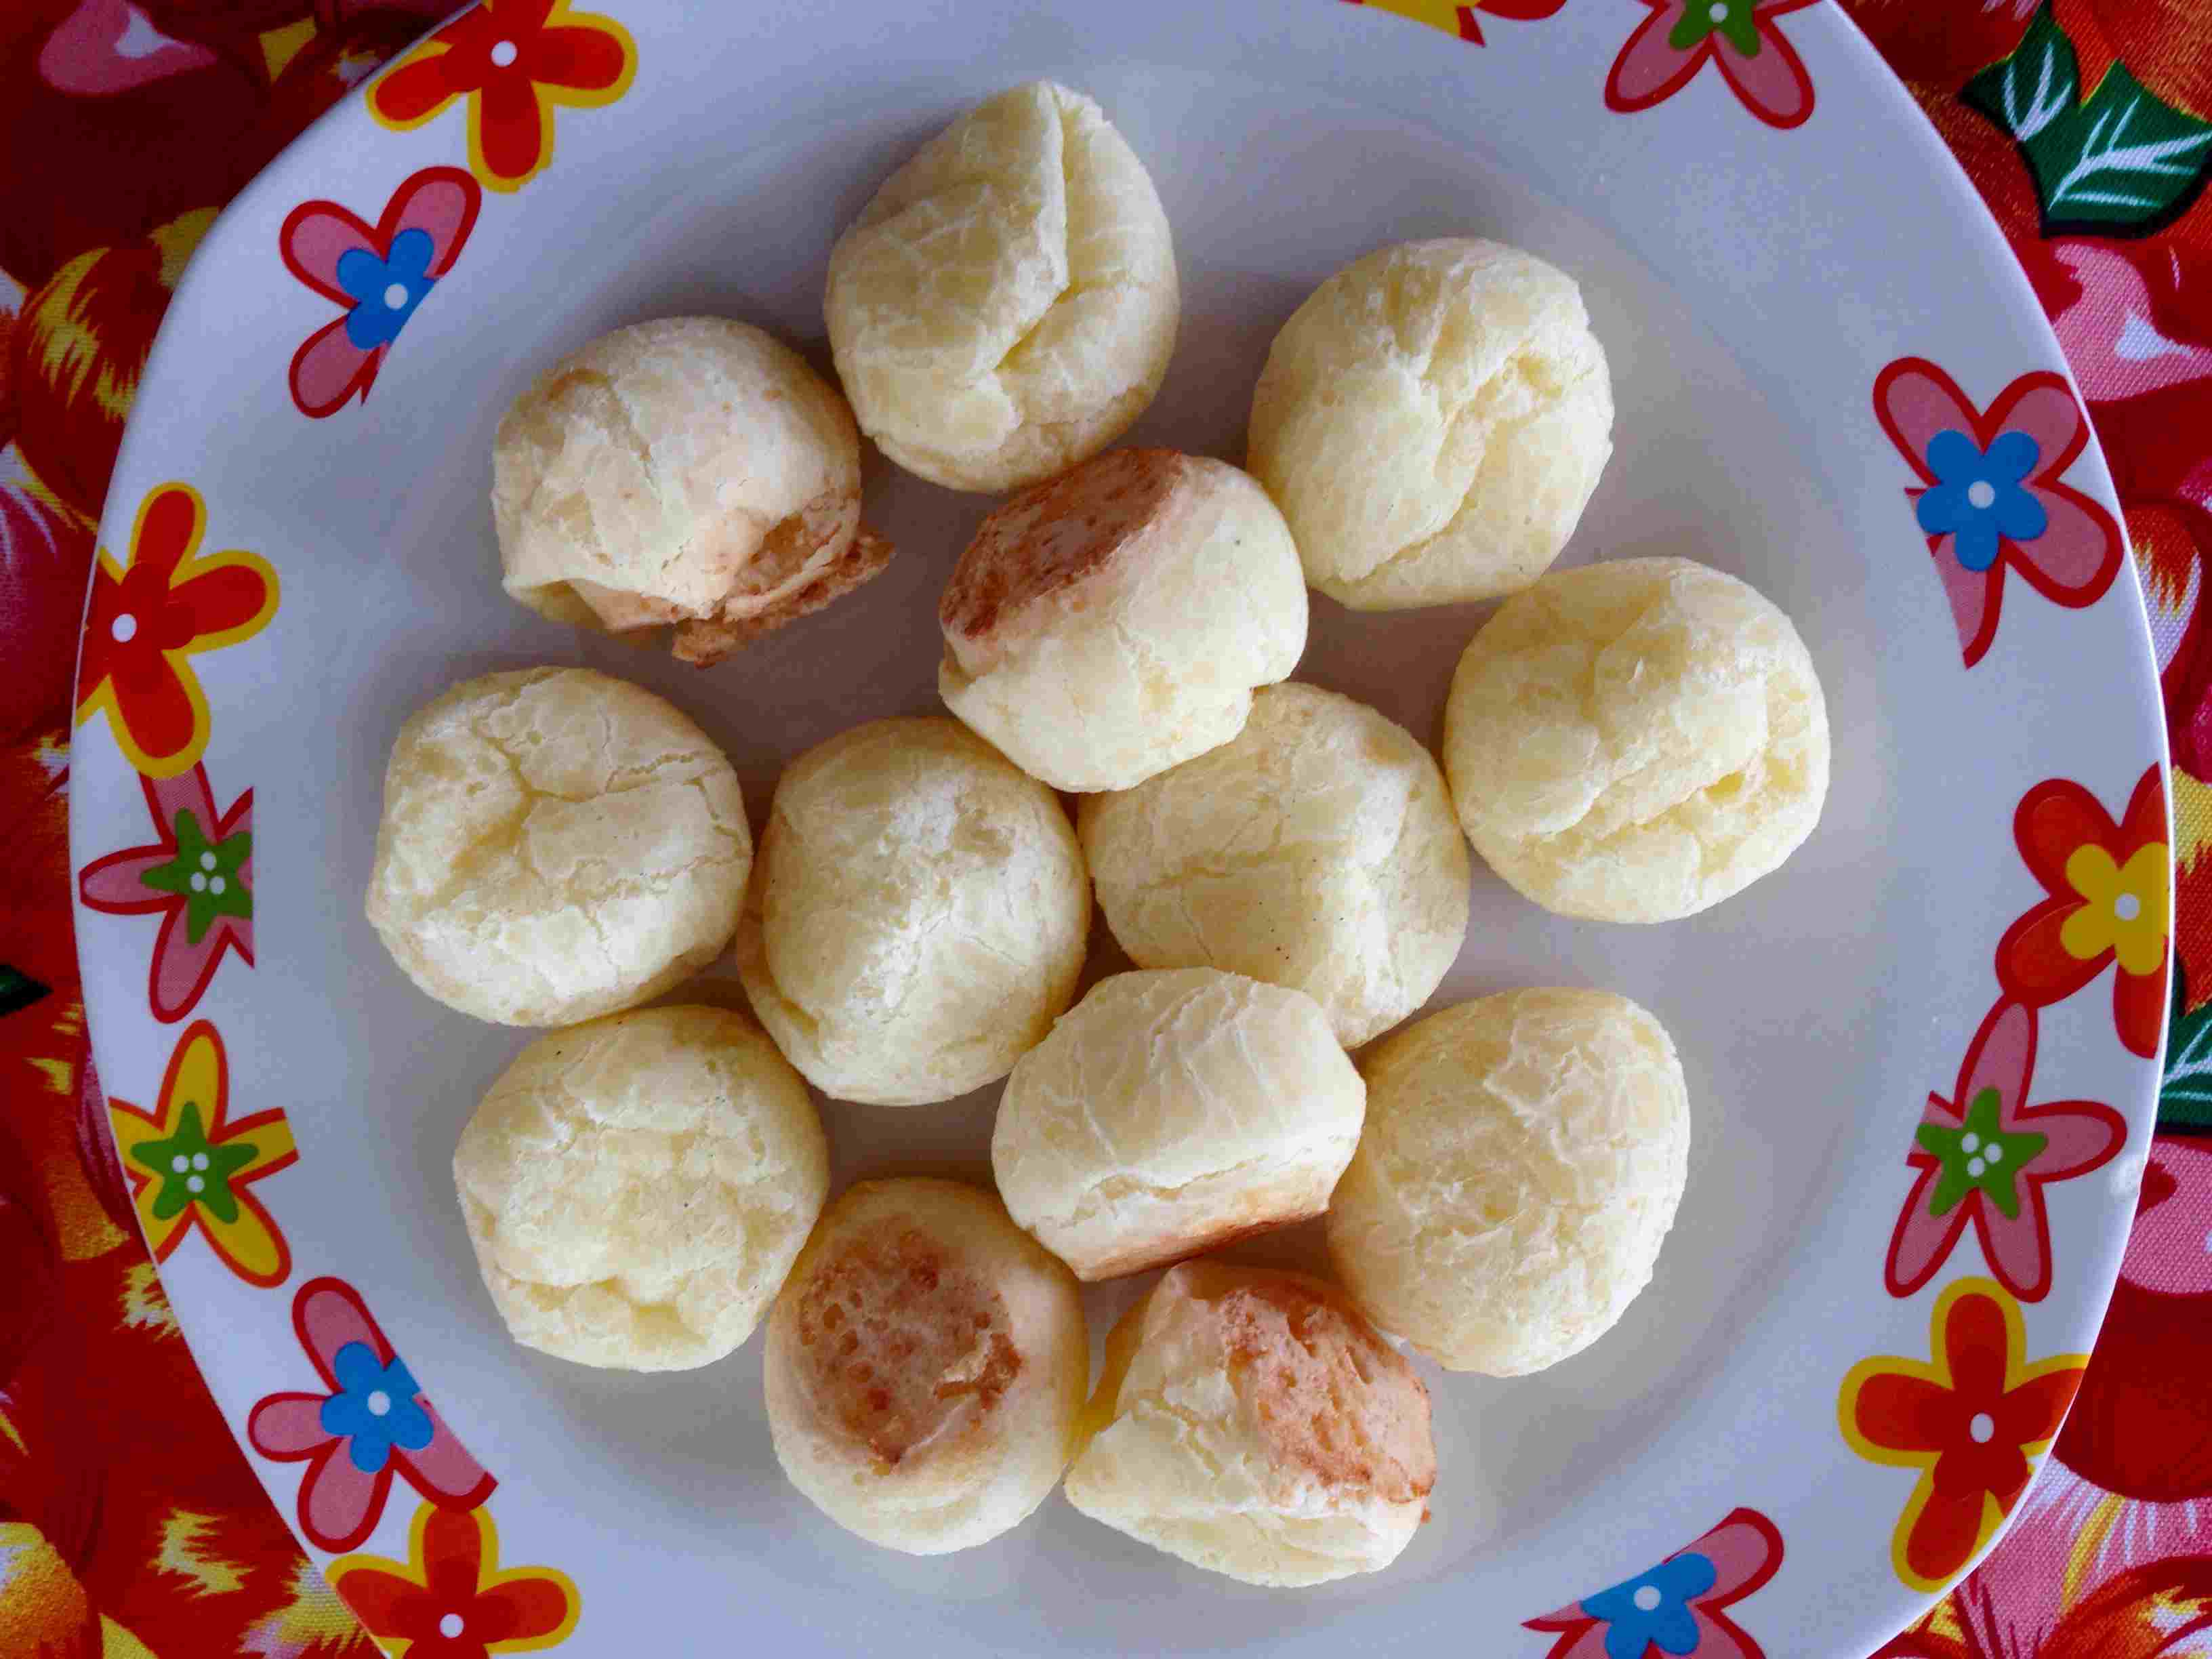 Close up of pao de queijo snack on colorful plate.